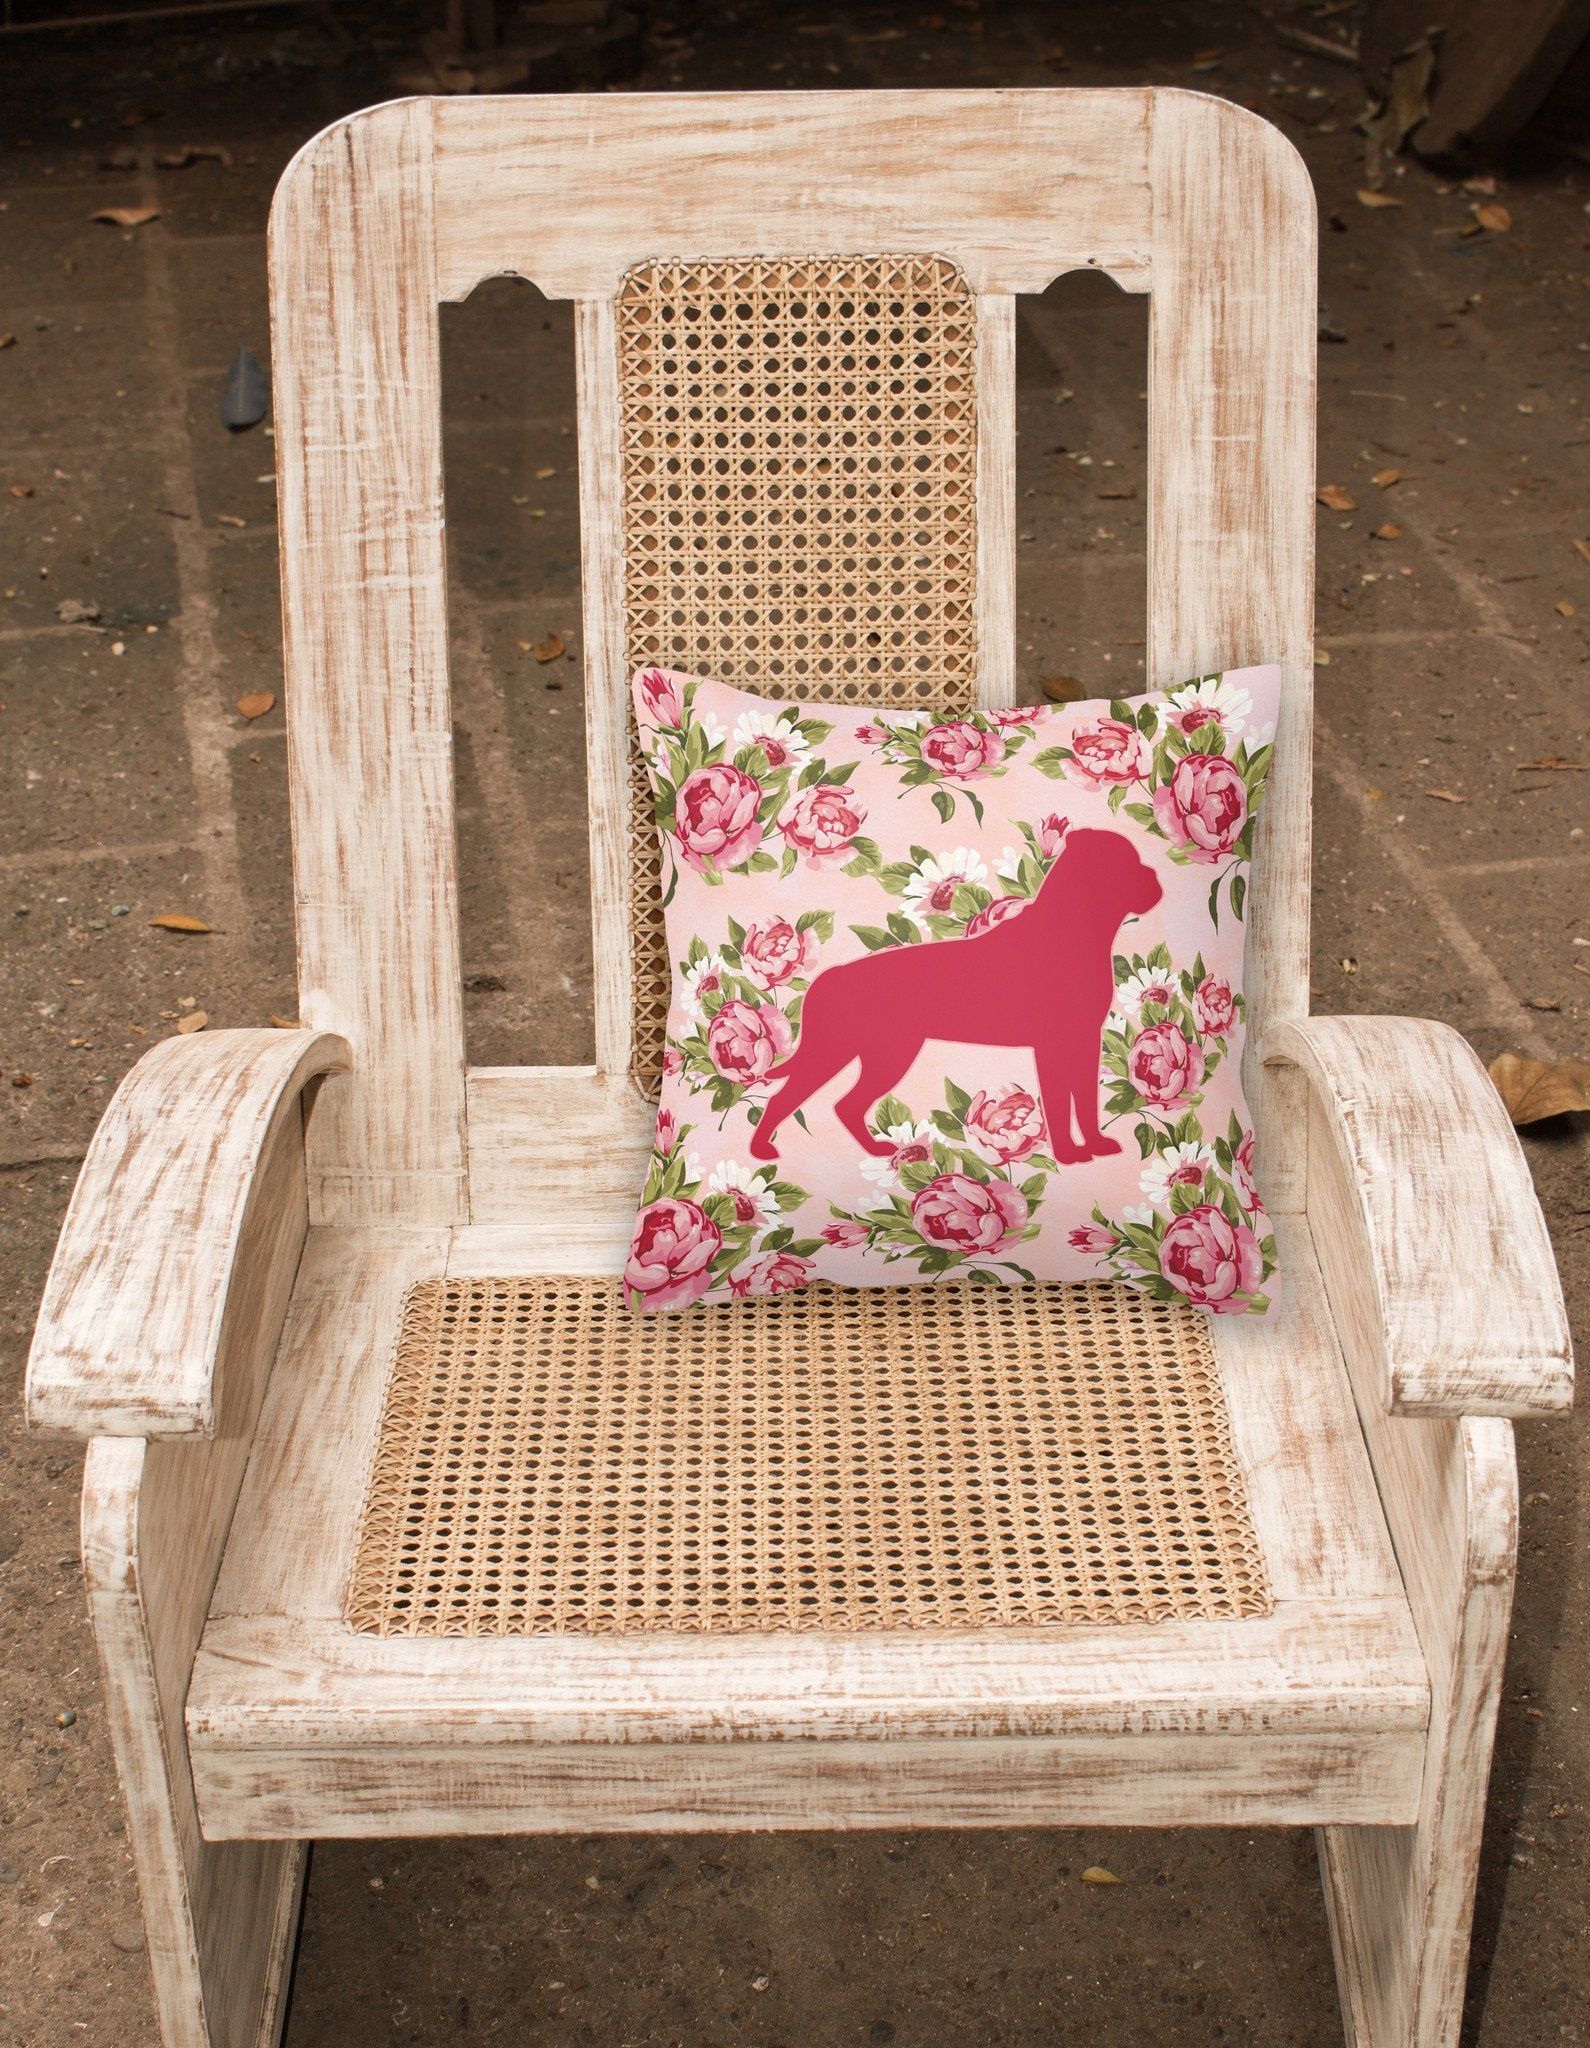 Rottweiler Shabby Chic Pink Roses  Fabric Decorative Pillow BB1083-RS-PK-PW1414 by Caroline's Treasures